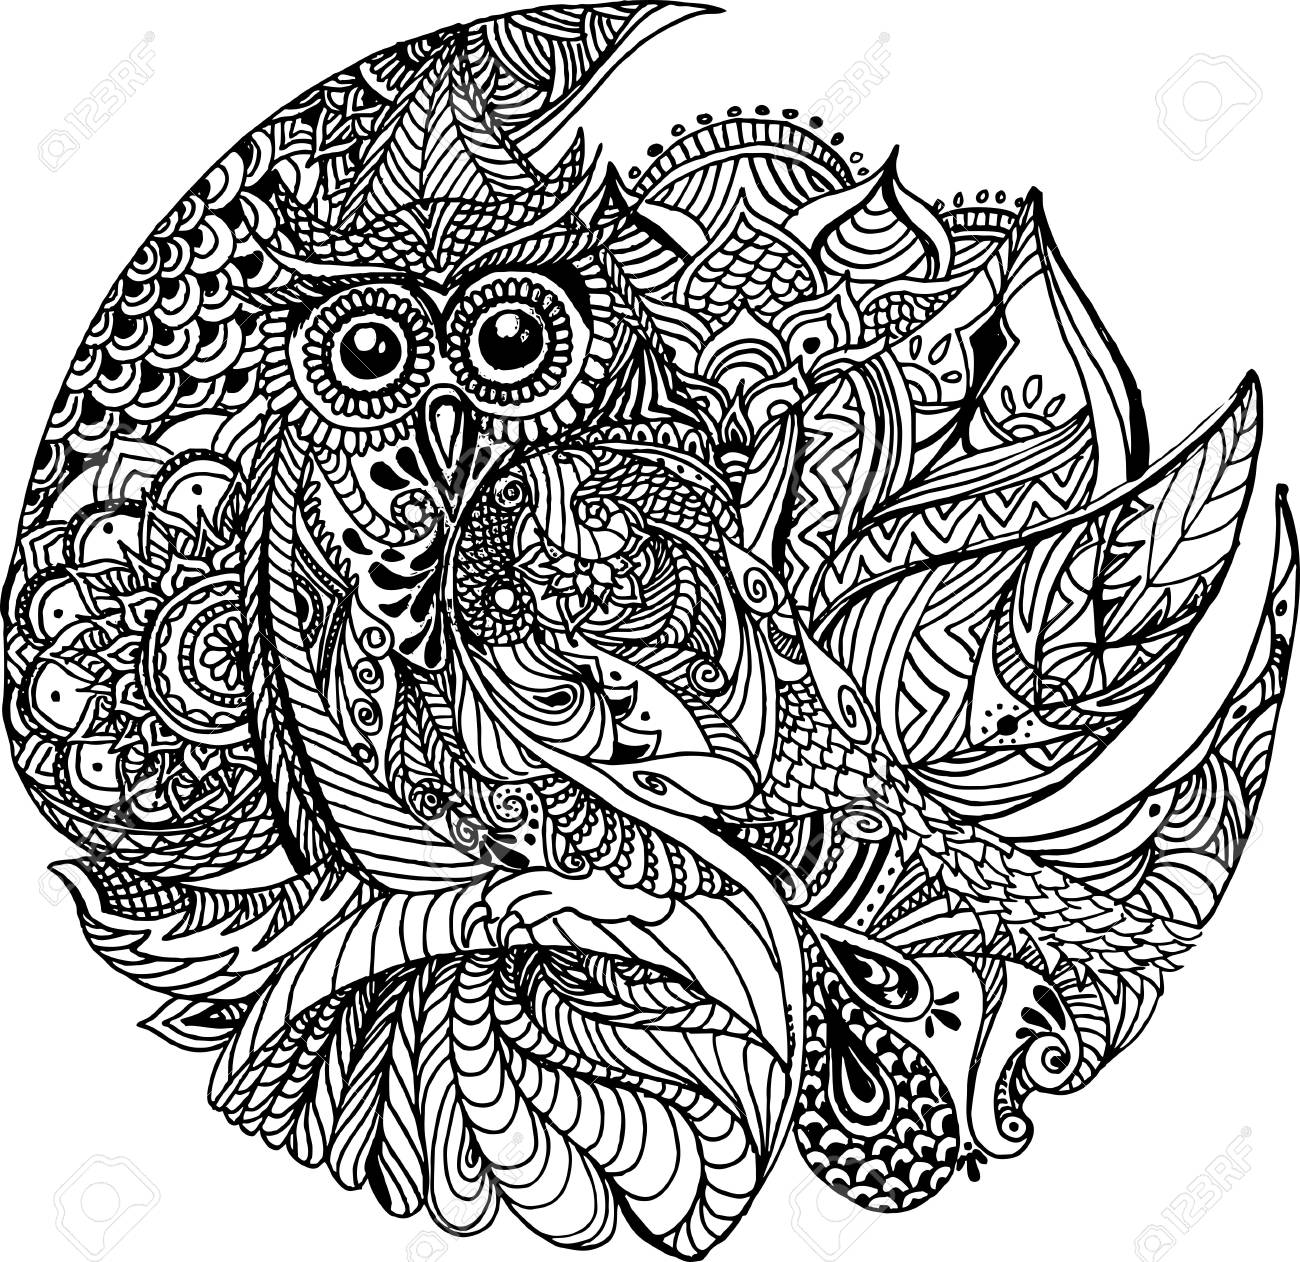 Floral Owl Design. Owl Tattoo. Coloring Book Page. Royalty Free ...